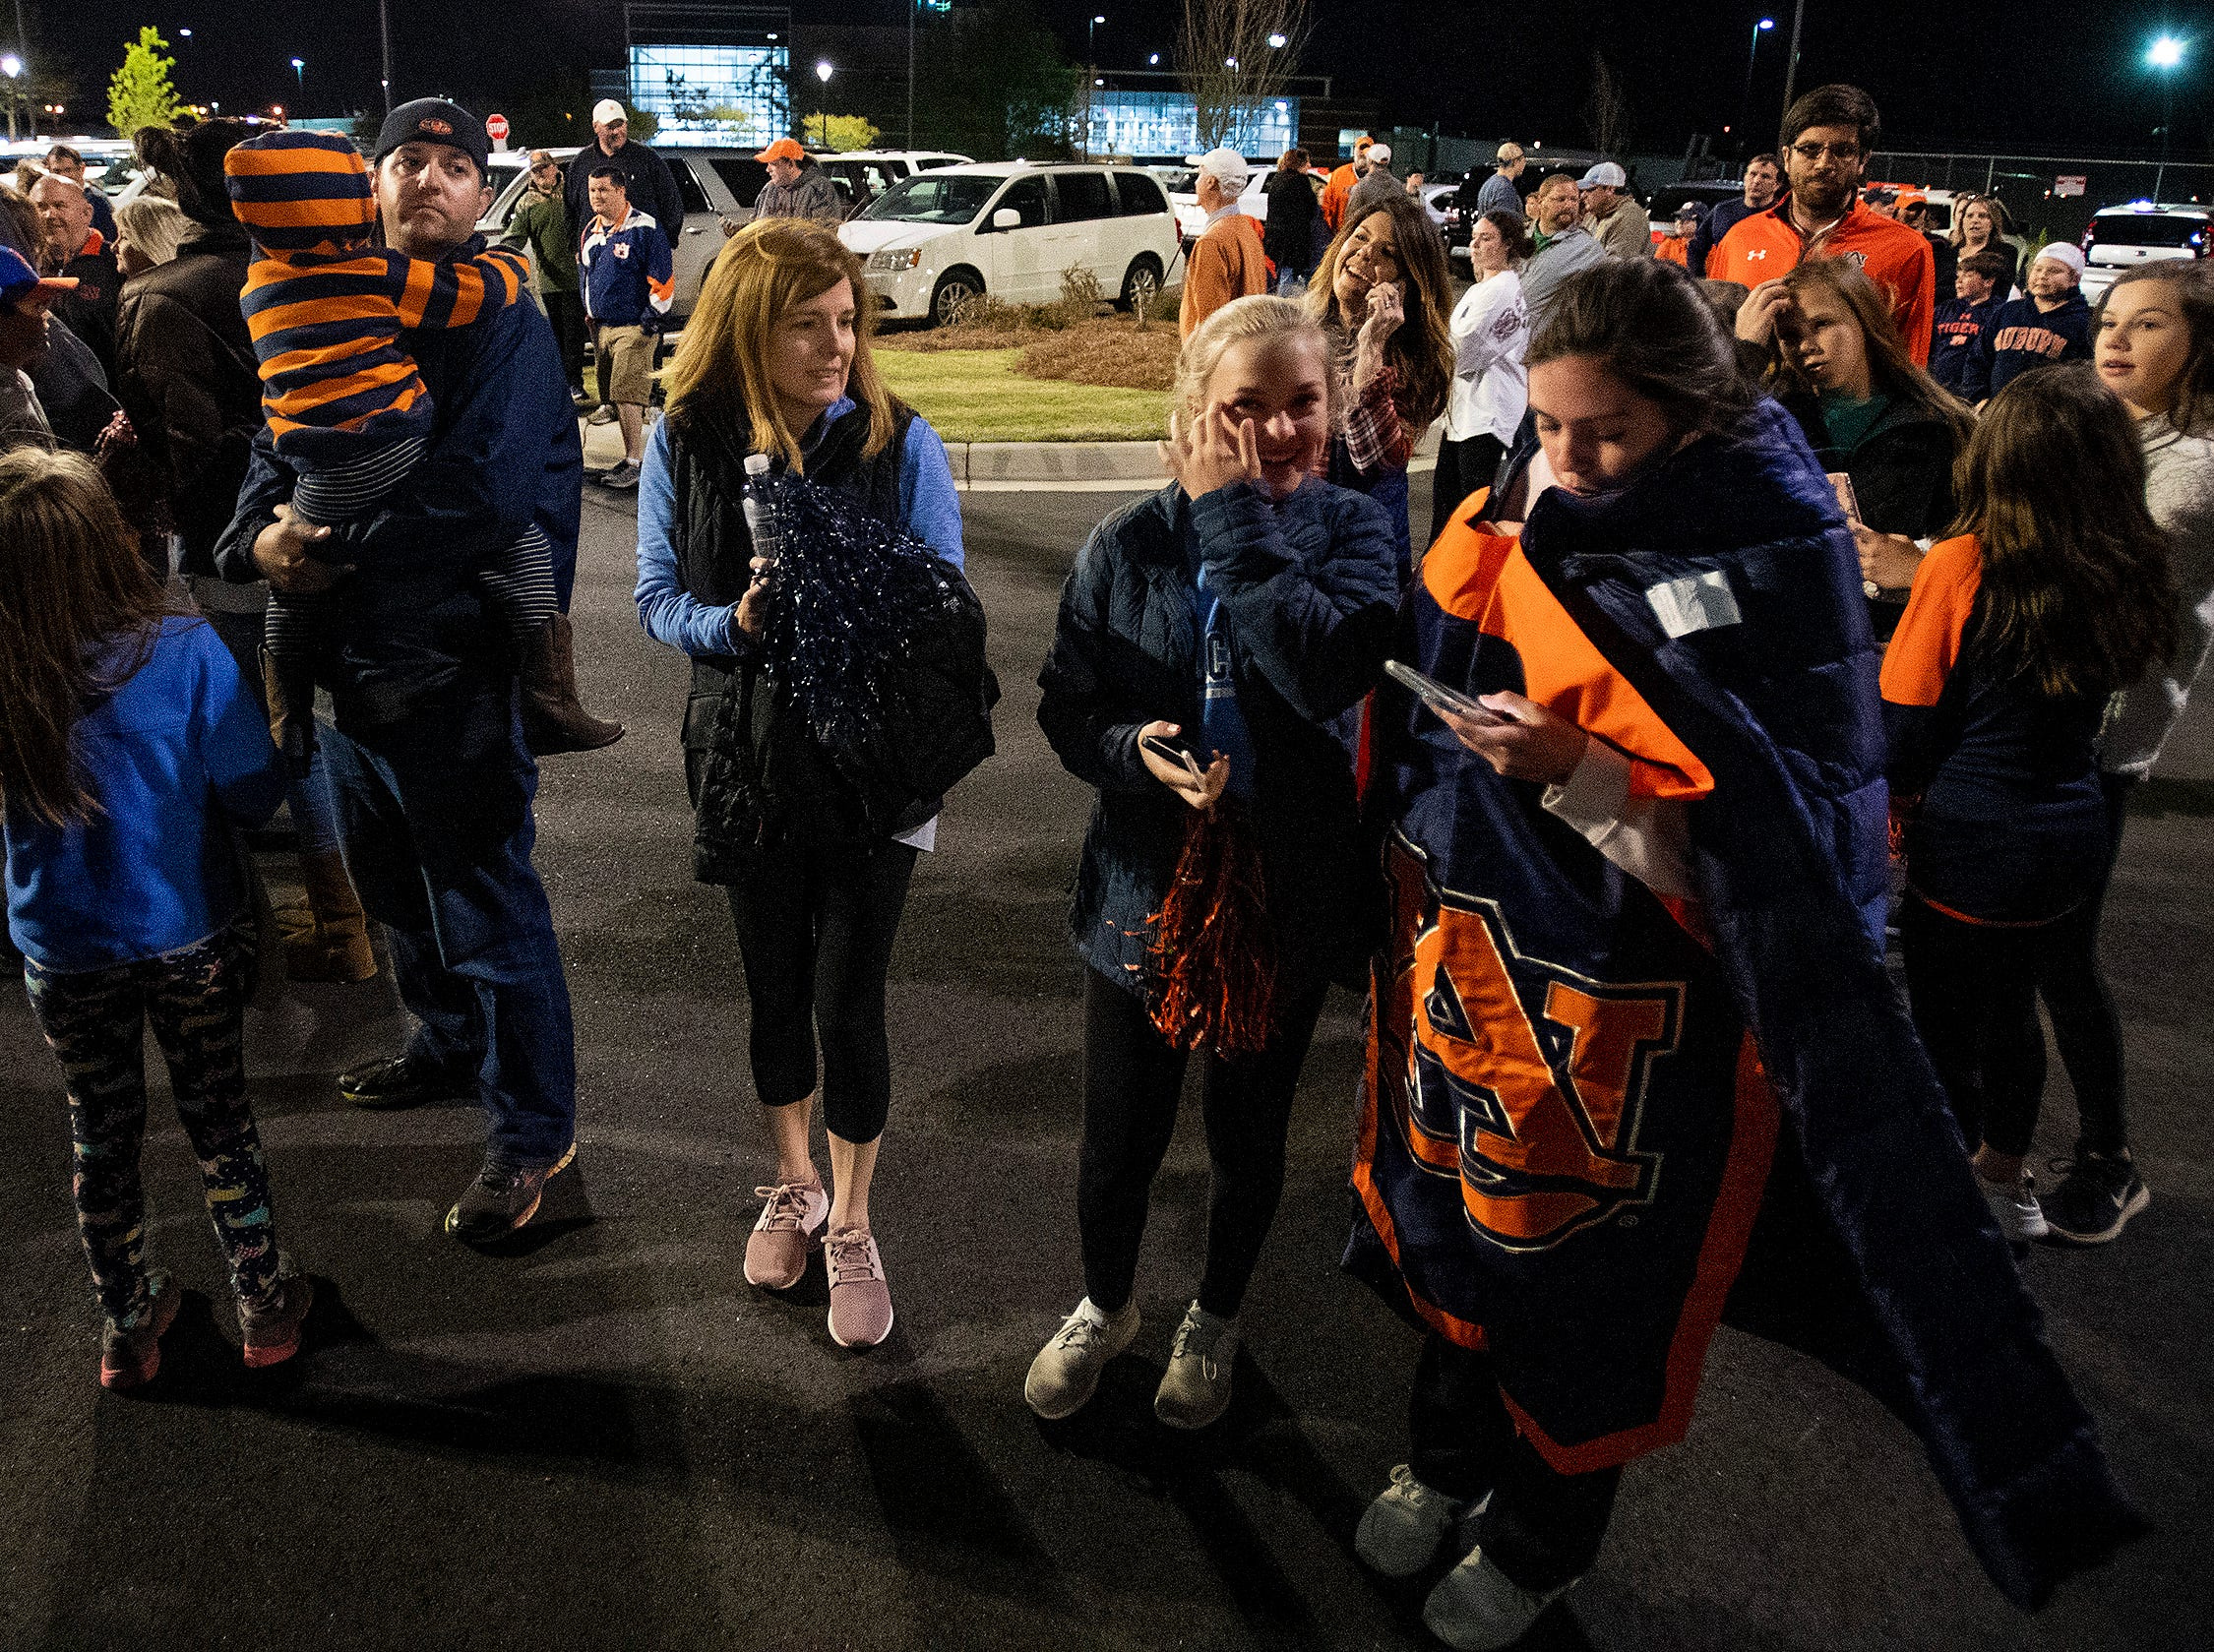 Auburn fans wait for the Auburn men's basketball team to arrive at the Montgomery, Ala., airport on Sunday evening March 31, 2019 after defeating Kentucky in Kansas City to advance to the NCAA Basketball Final Four next weekend.